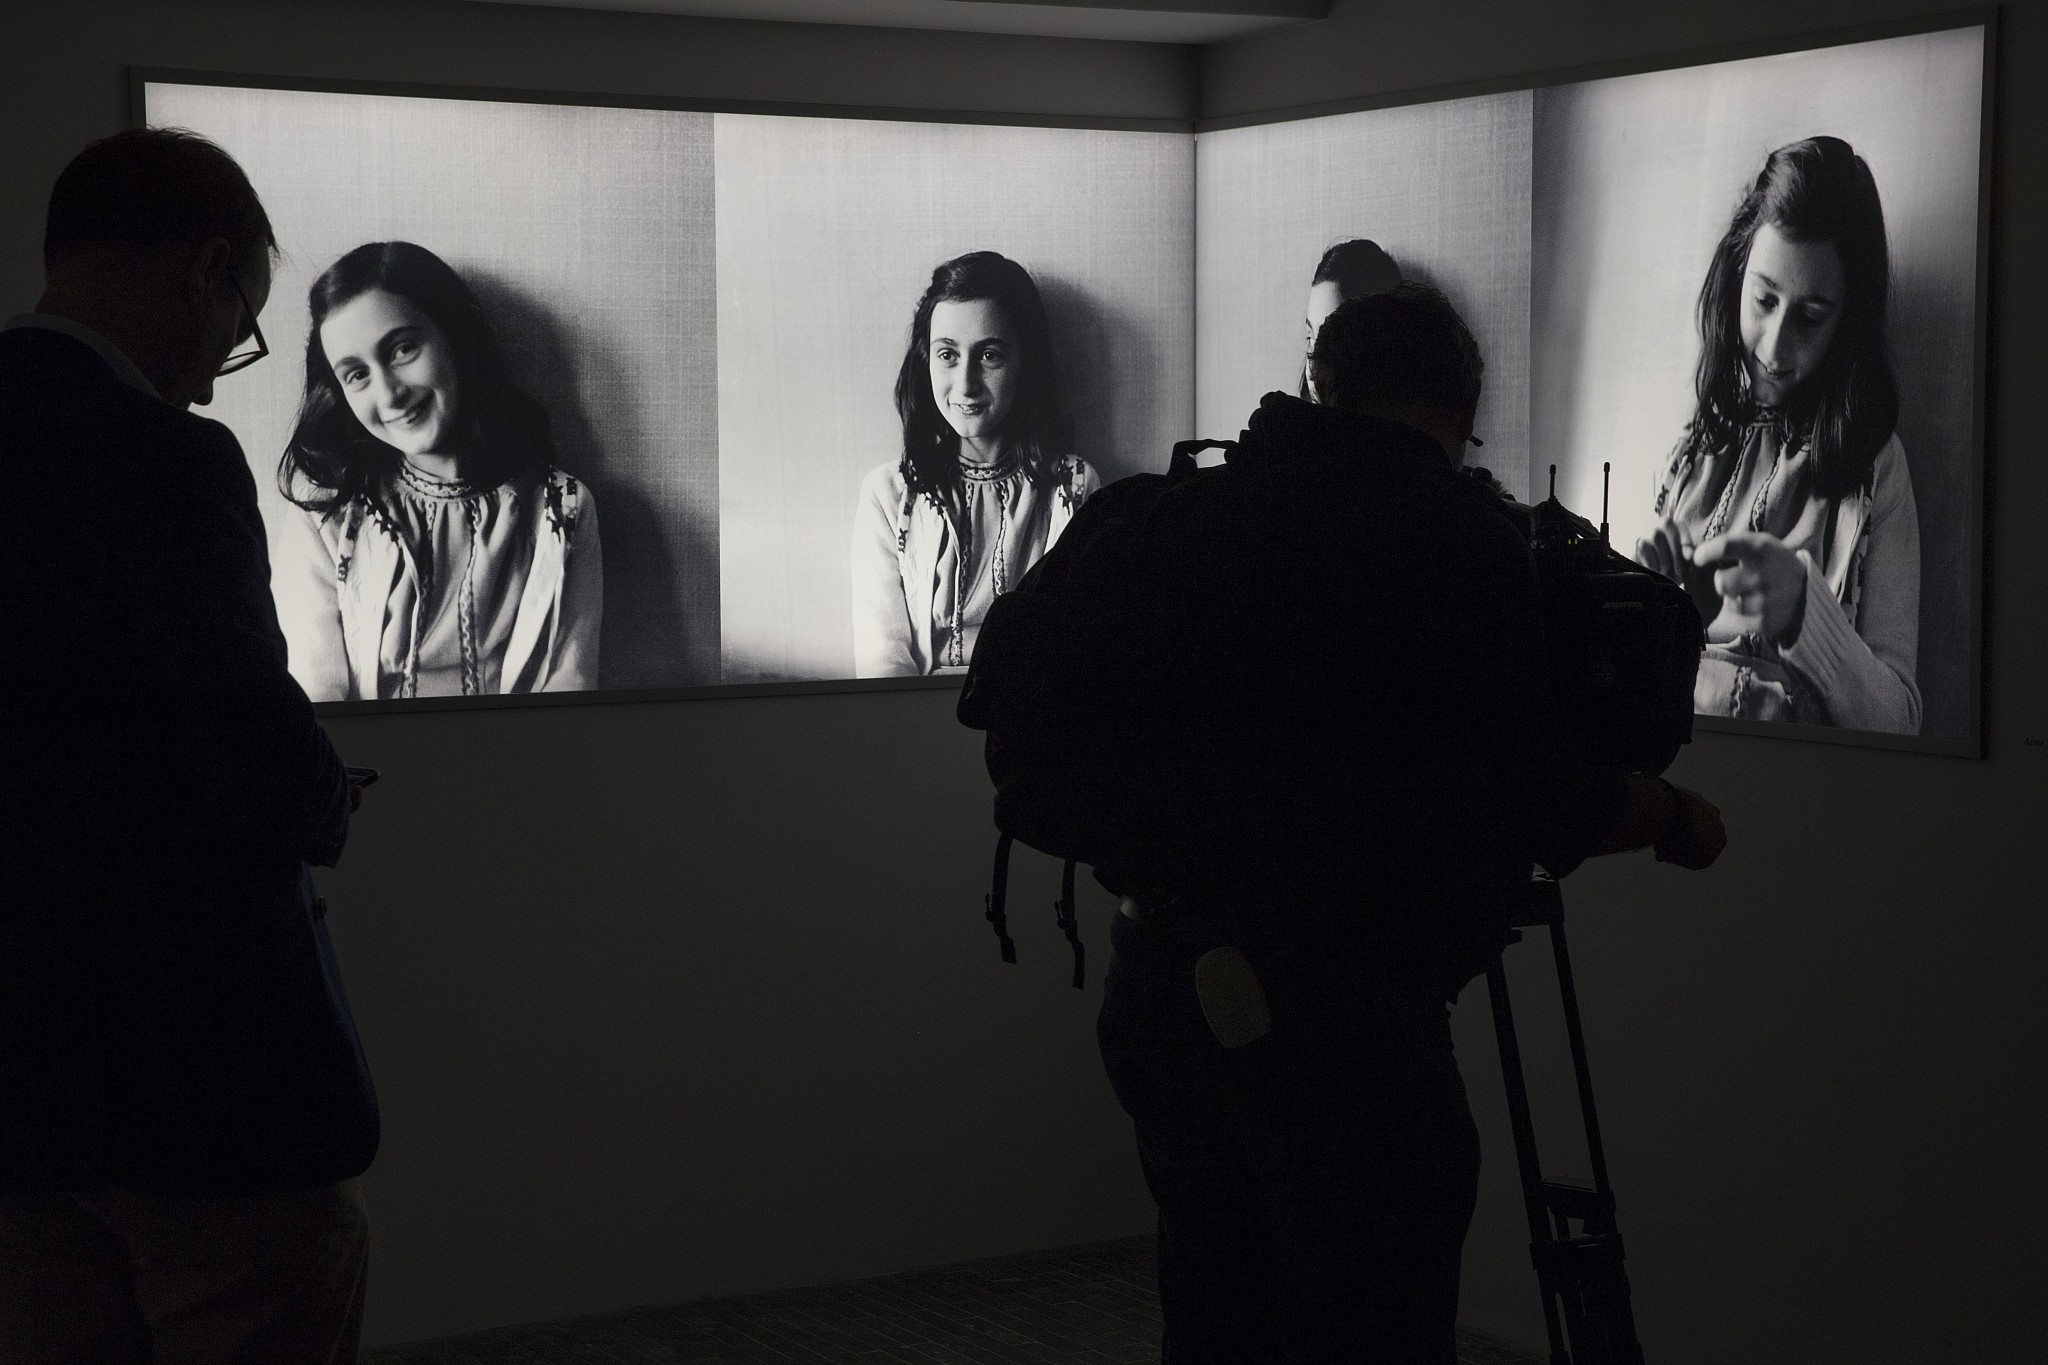 Anne Frank House Renovated To Tell Story To New Generation The Times Of Israel